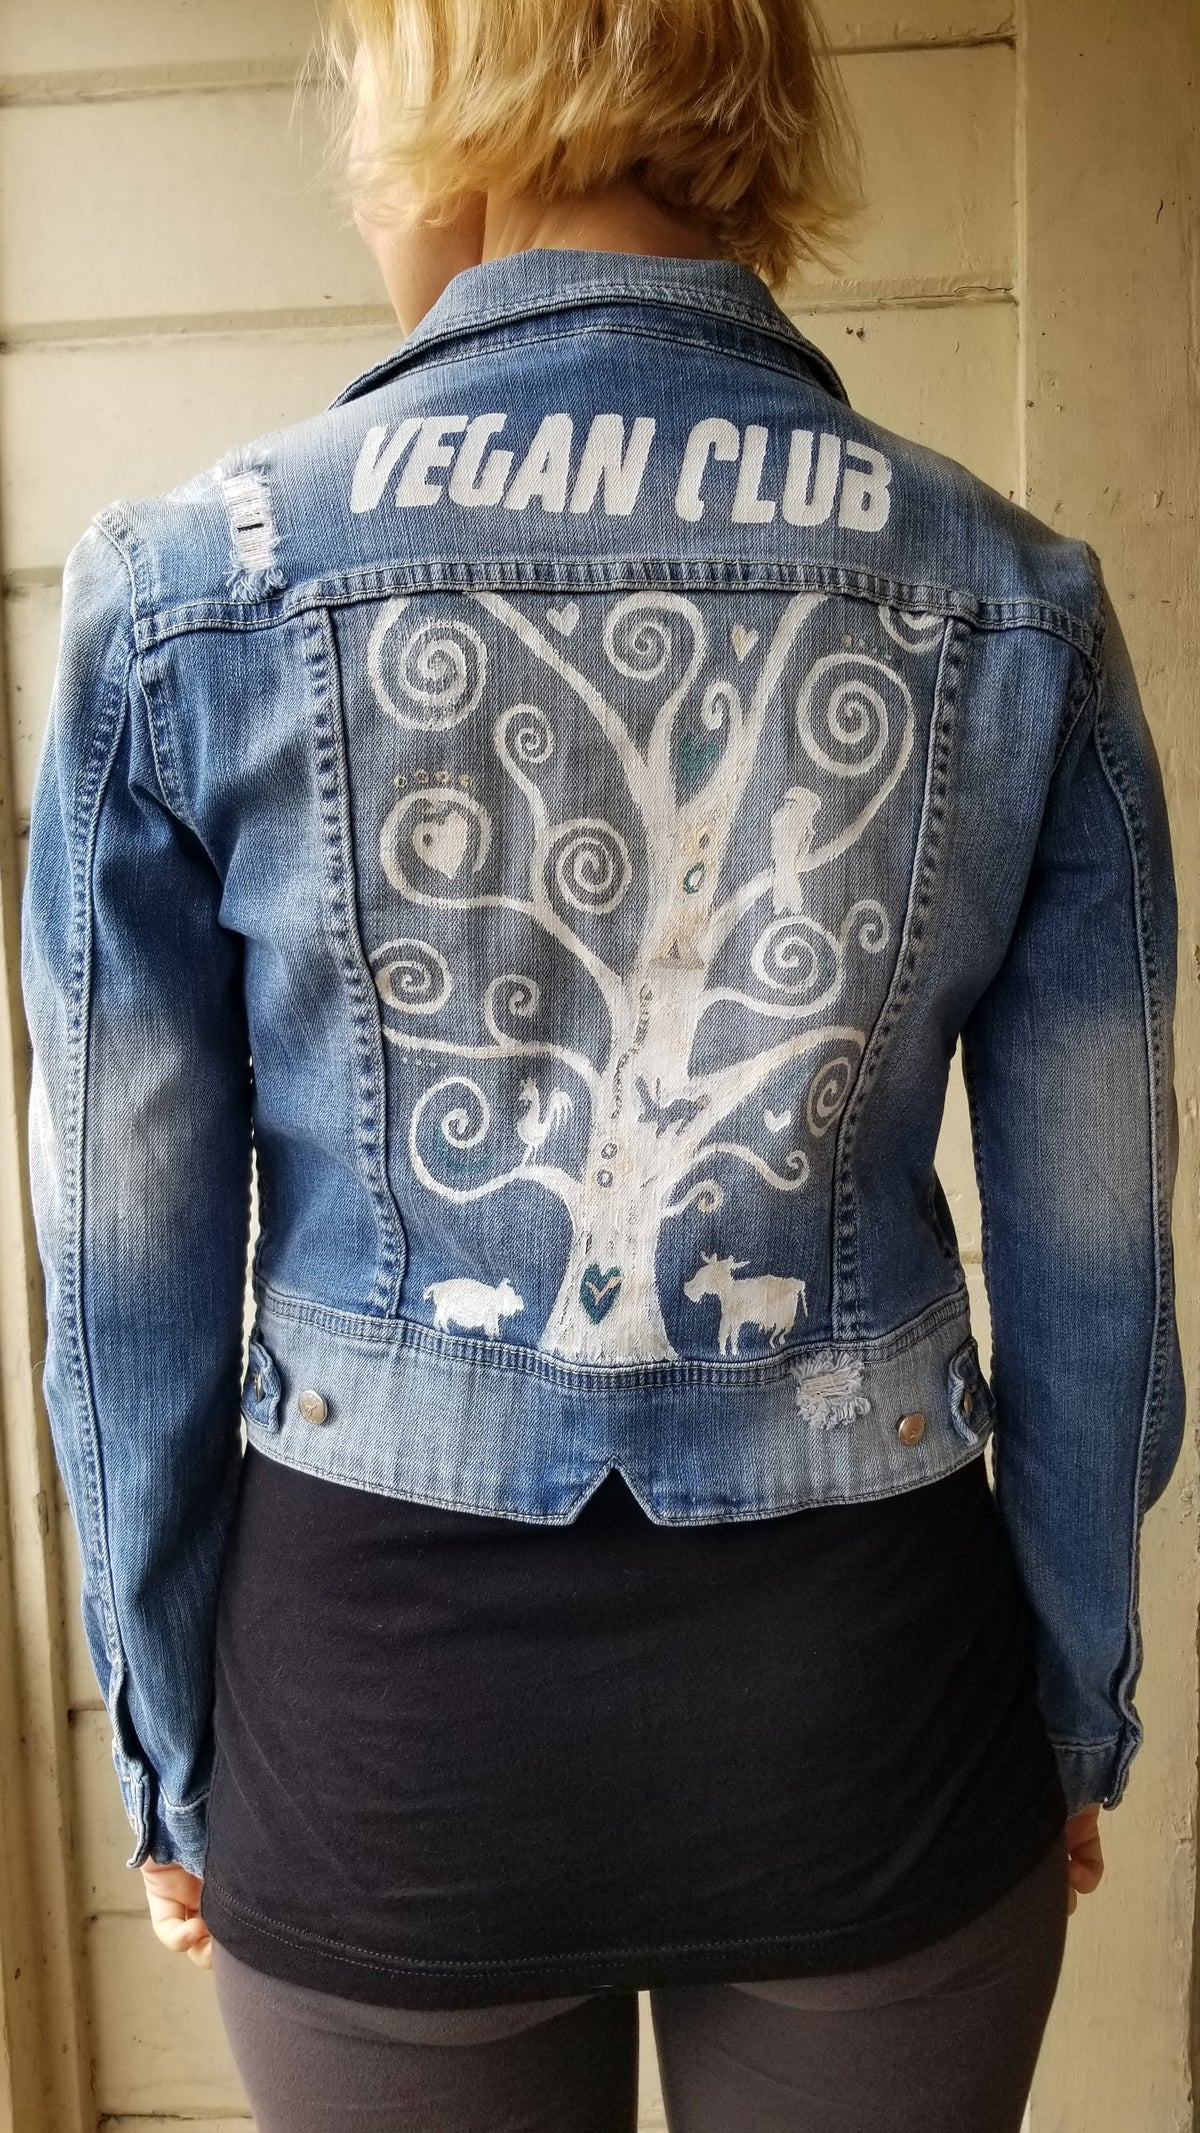 SOLD - Brandi Jae Collab Jean Jacket feat a Tree